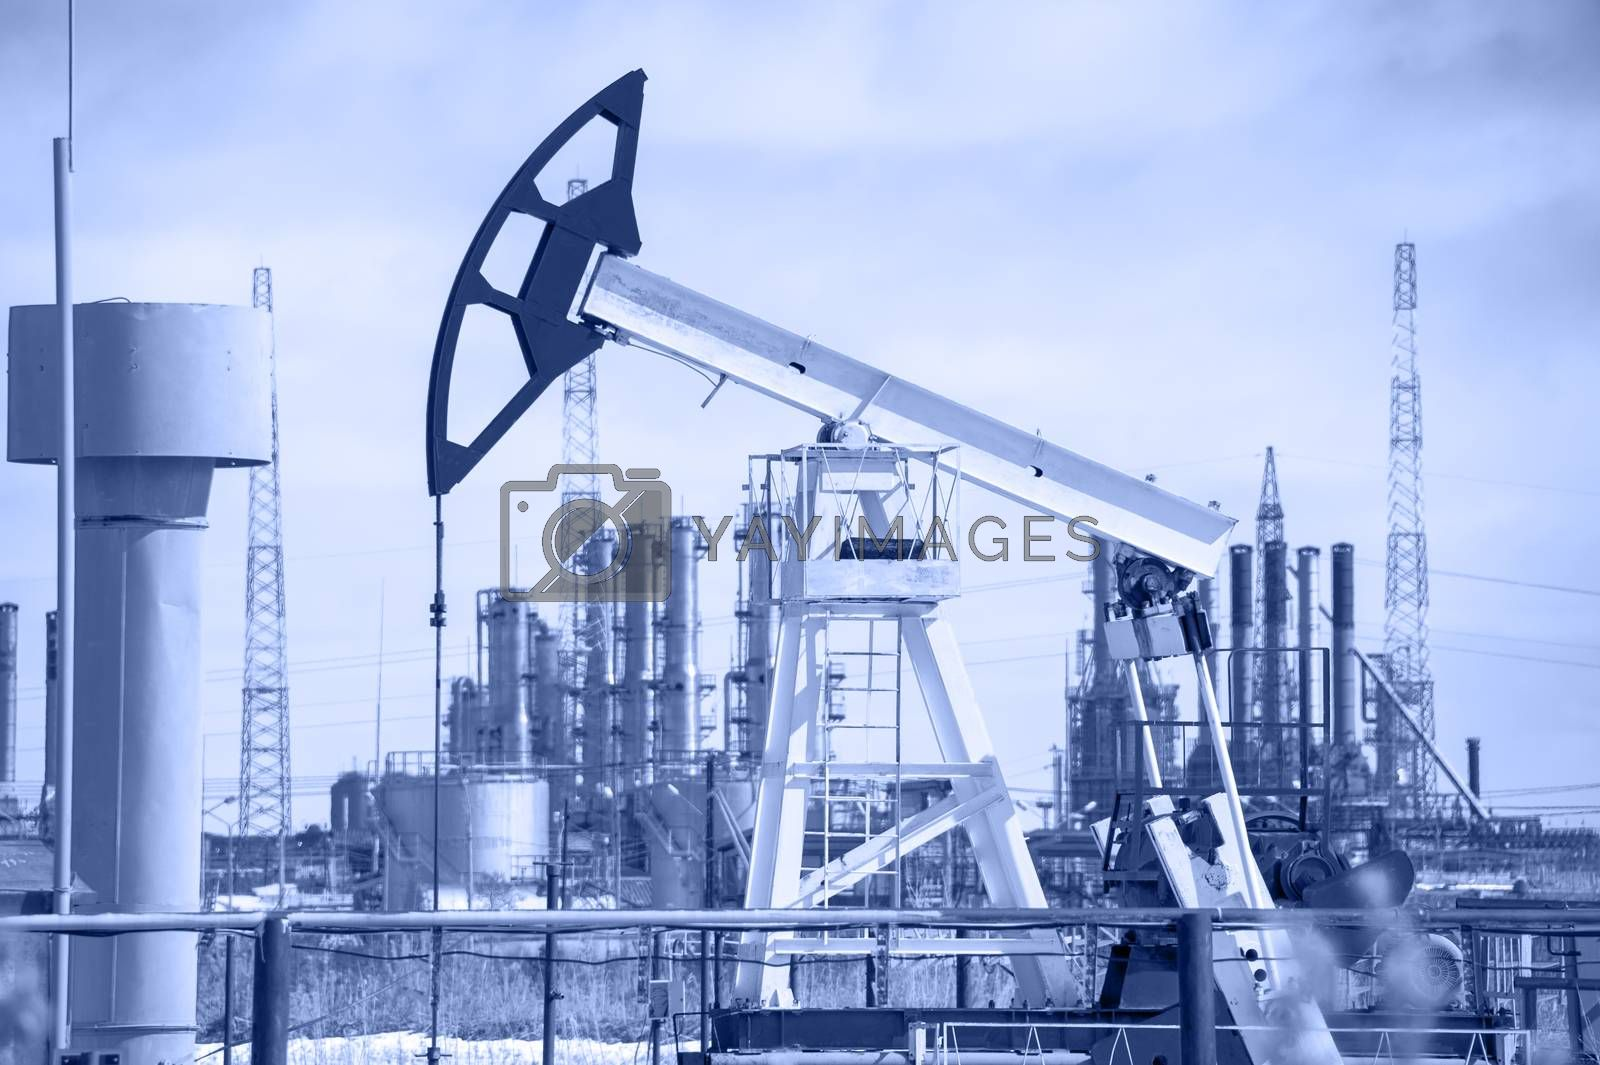 Pump jack and oil refinery. by bashta